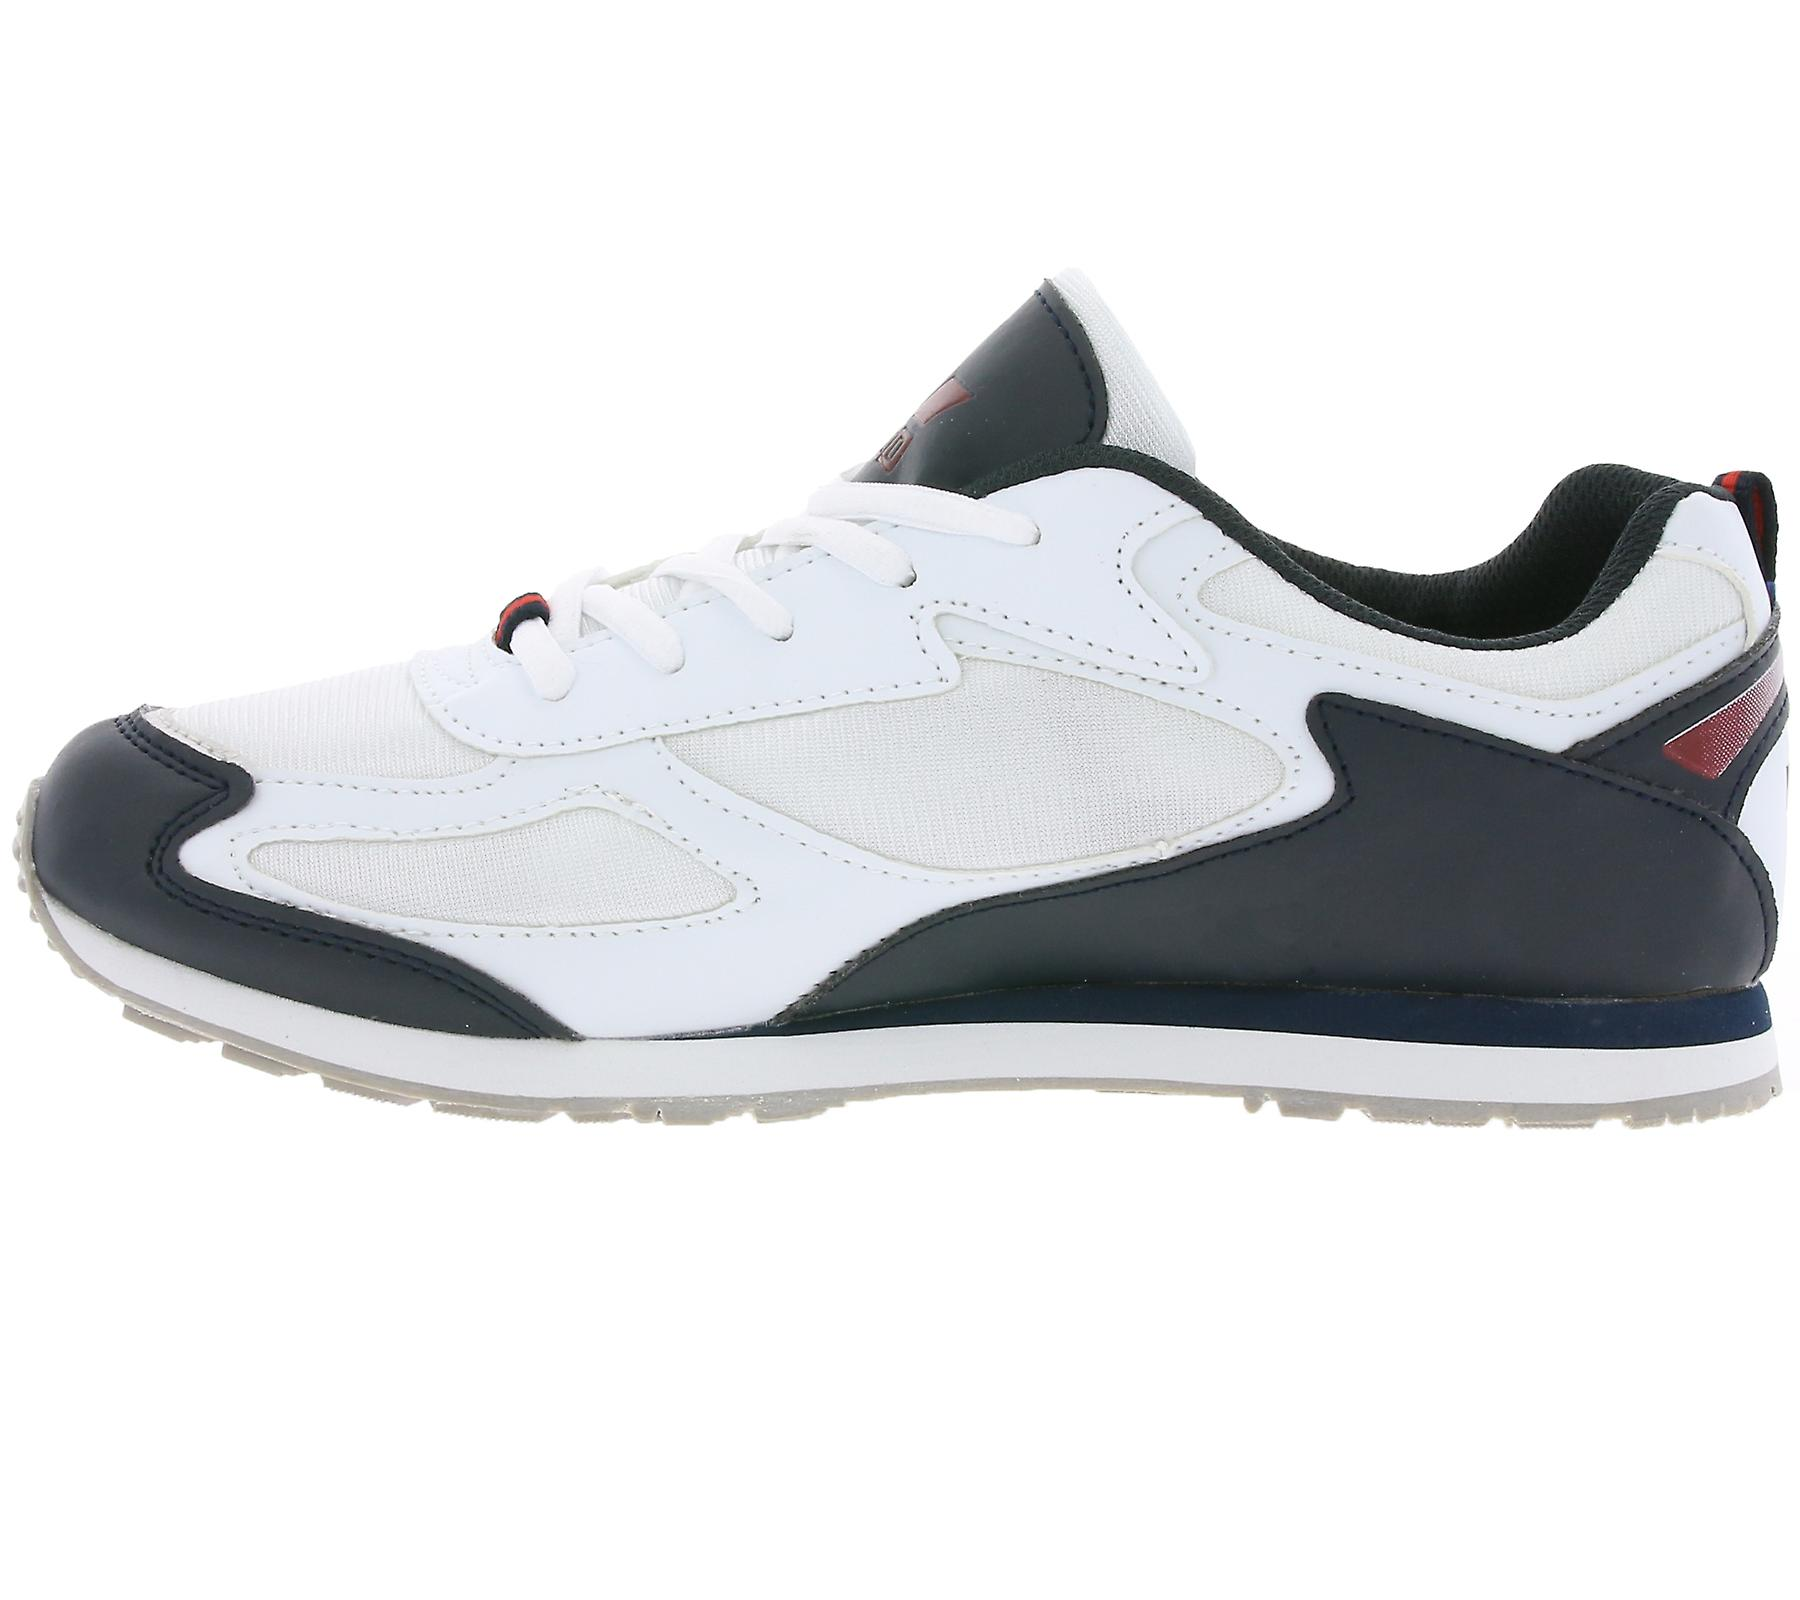 men's LICO shoes sneaker running Nelson white pwfwq4